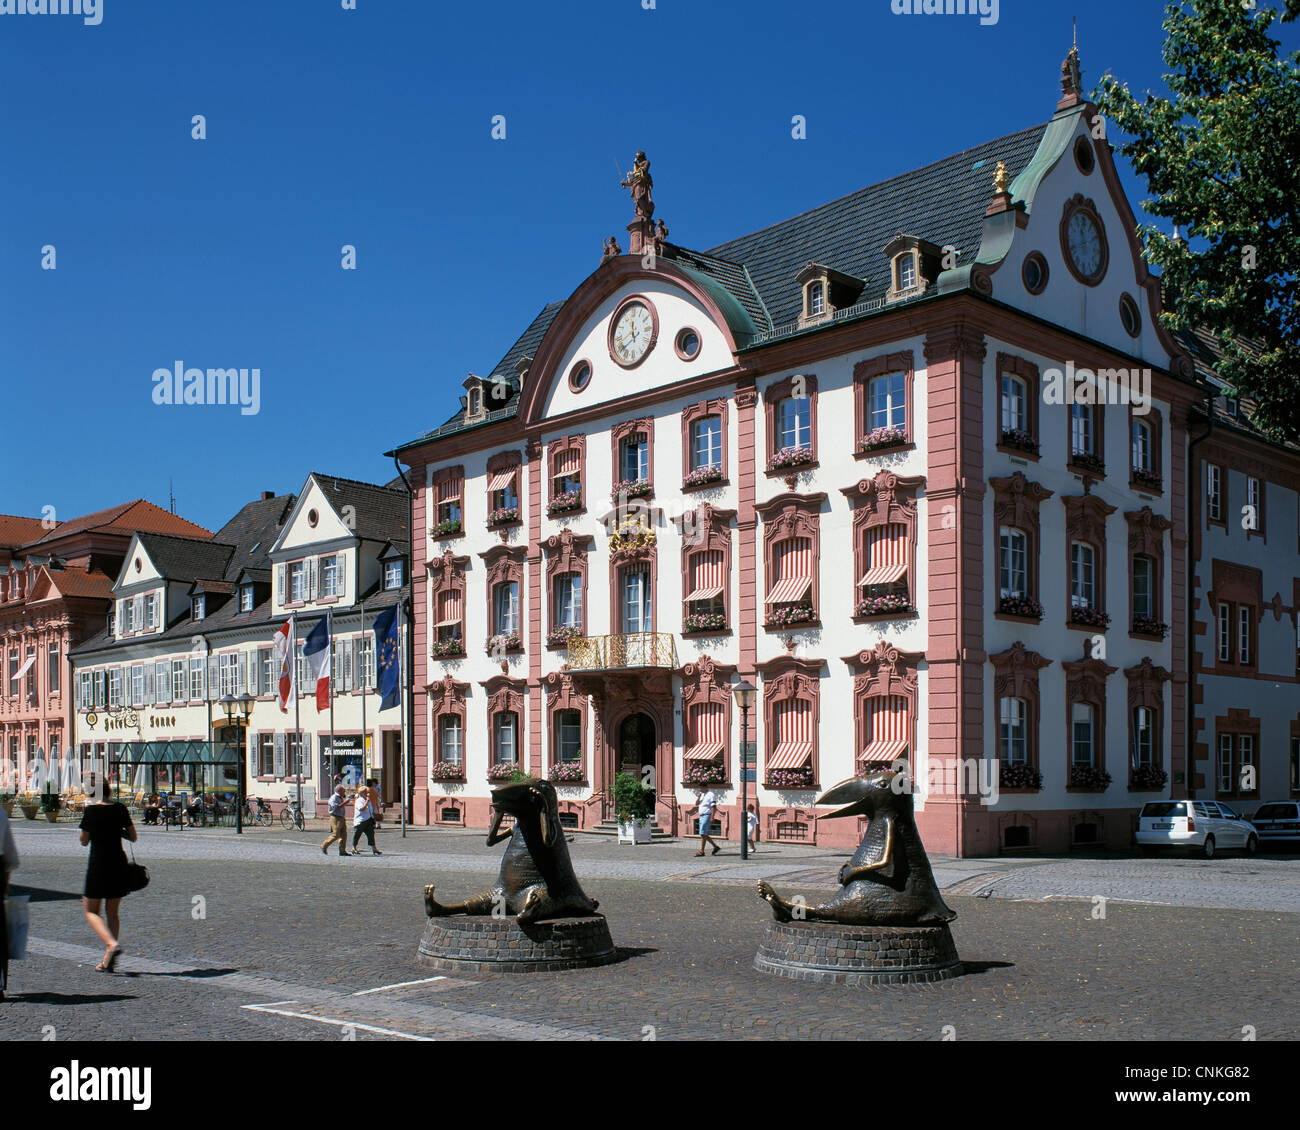 marktplatz mit rathaus und skulpturen vogelmenschen von ingrid und dieter werres in offenburg. Black Bedroom Furniture Sets. Home Design Ideas